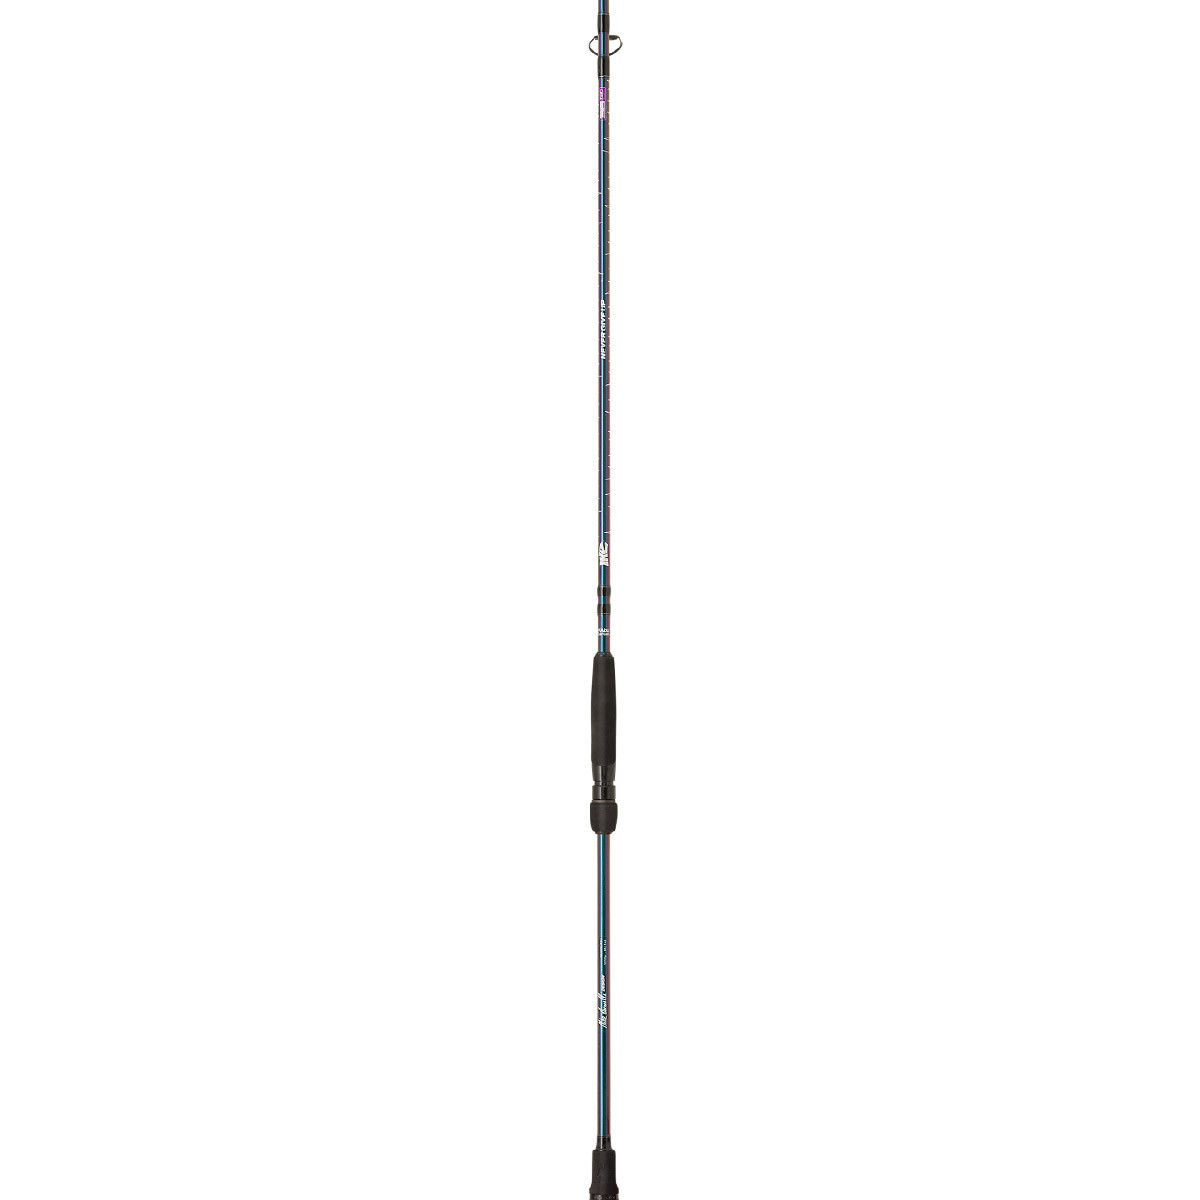 Abu Ike Signature Spinning Rod 711ml 5-20 gram